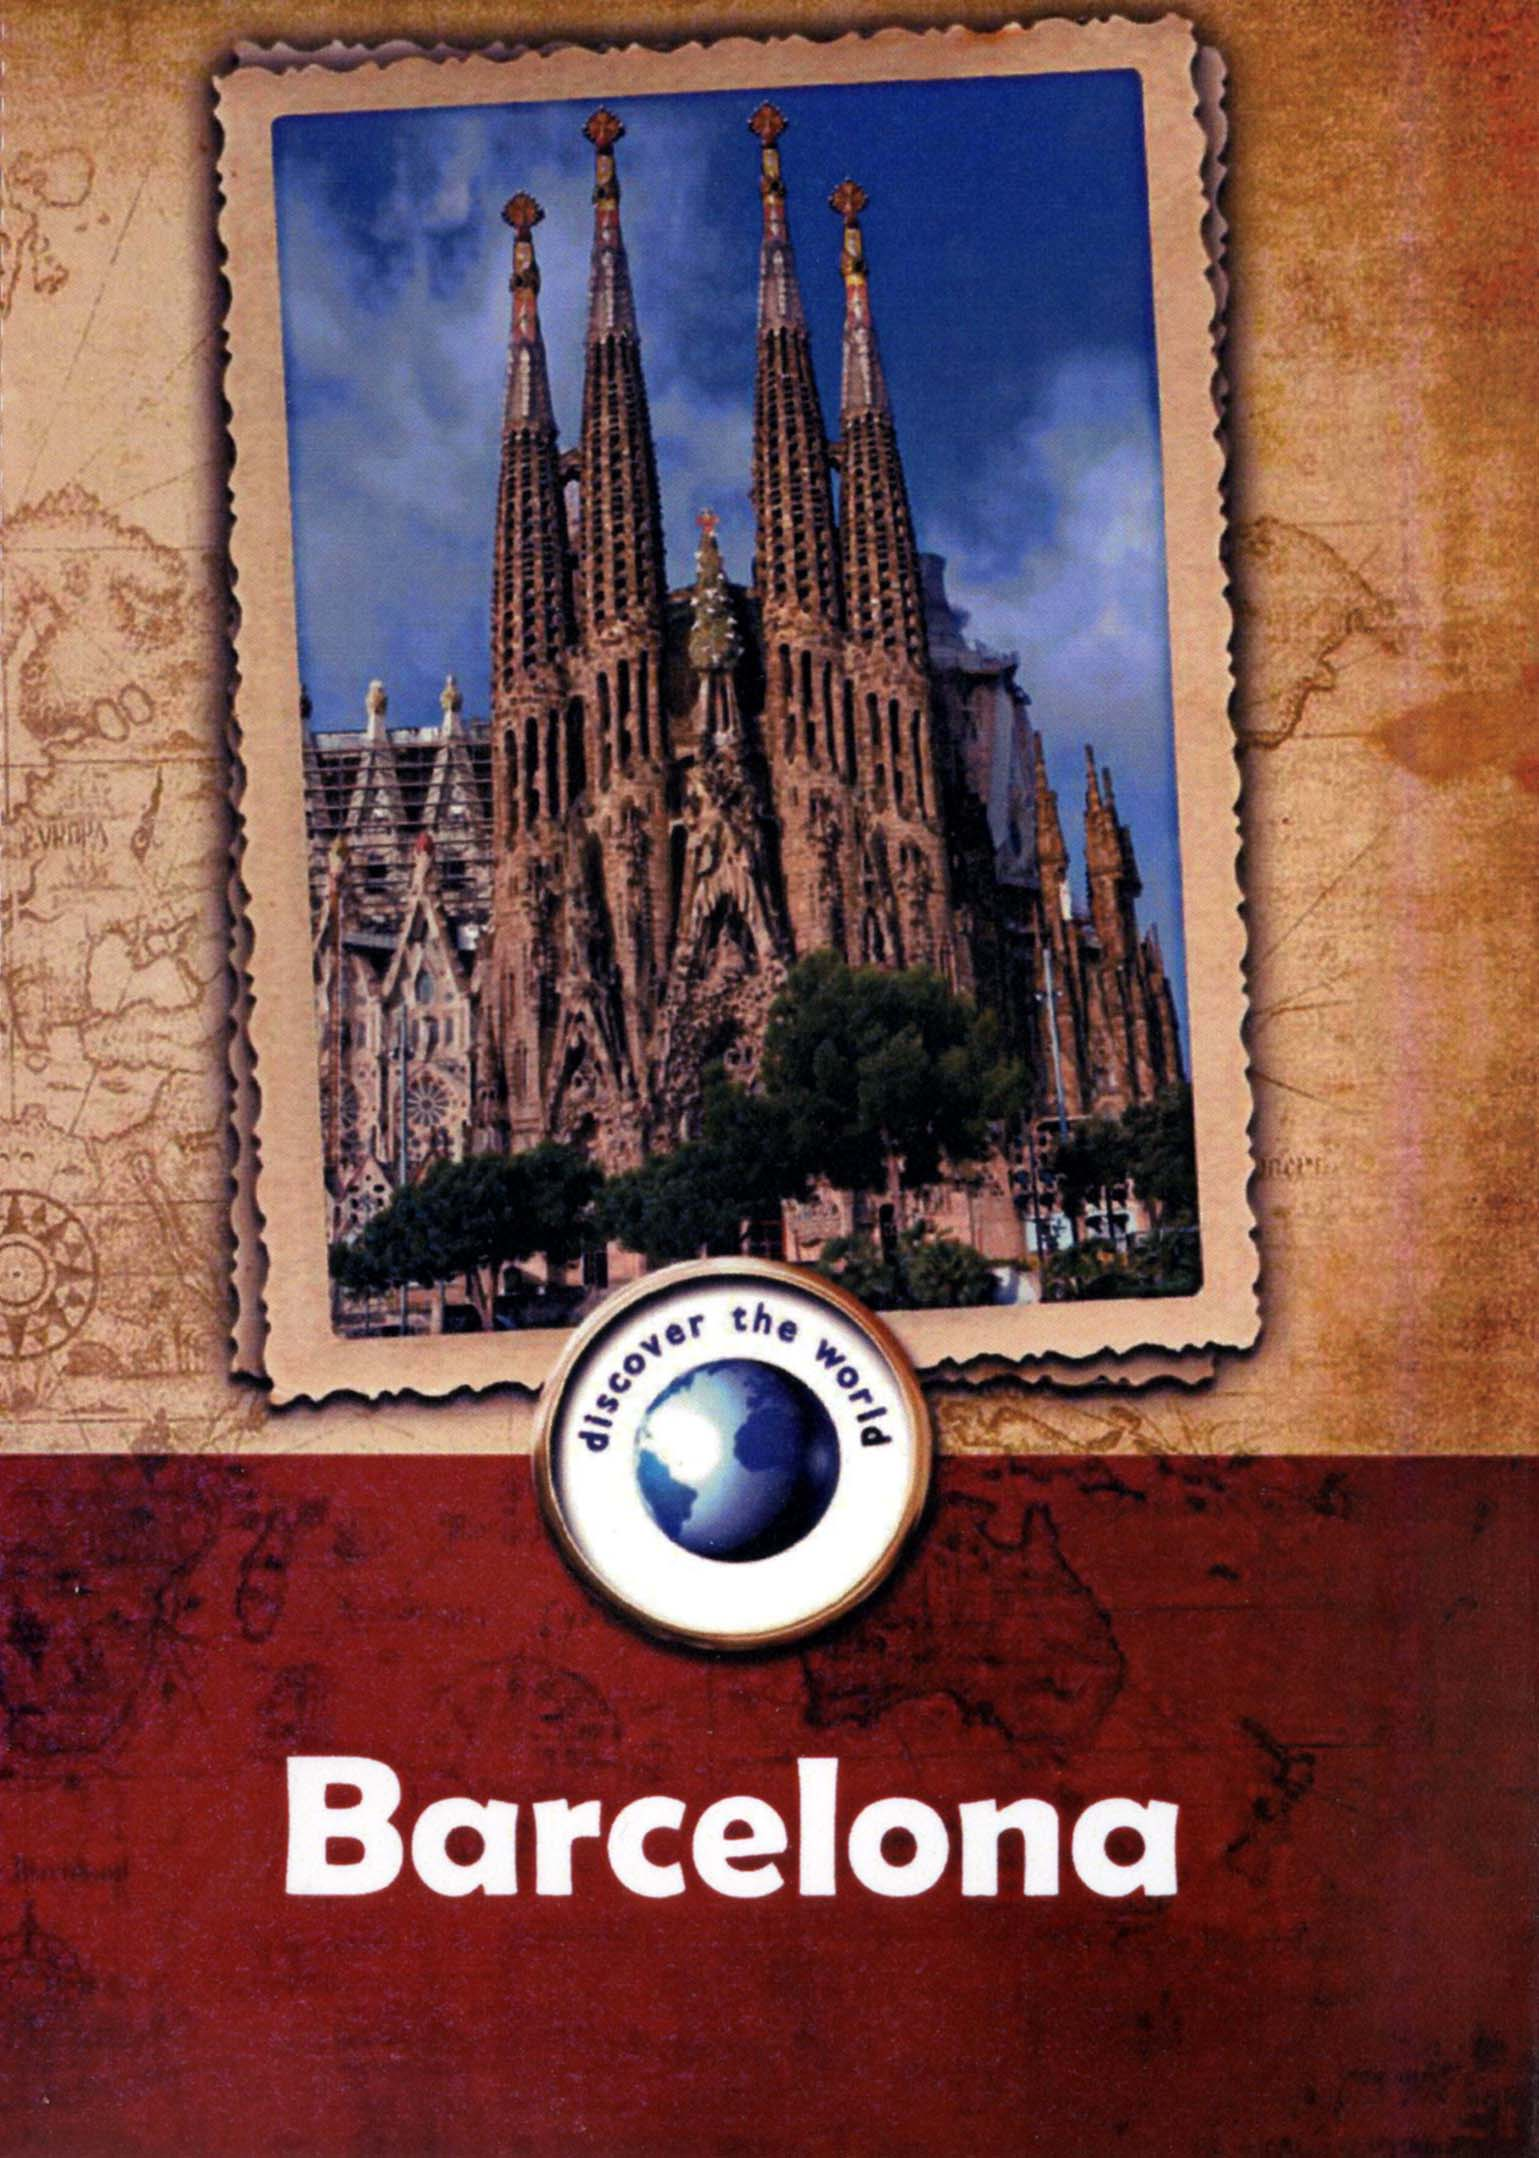 Discover the World: Barcelona